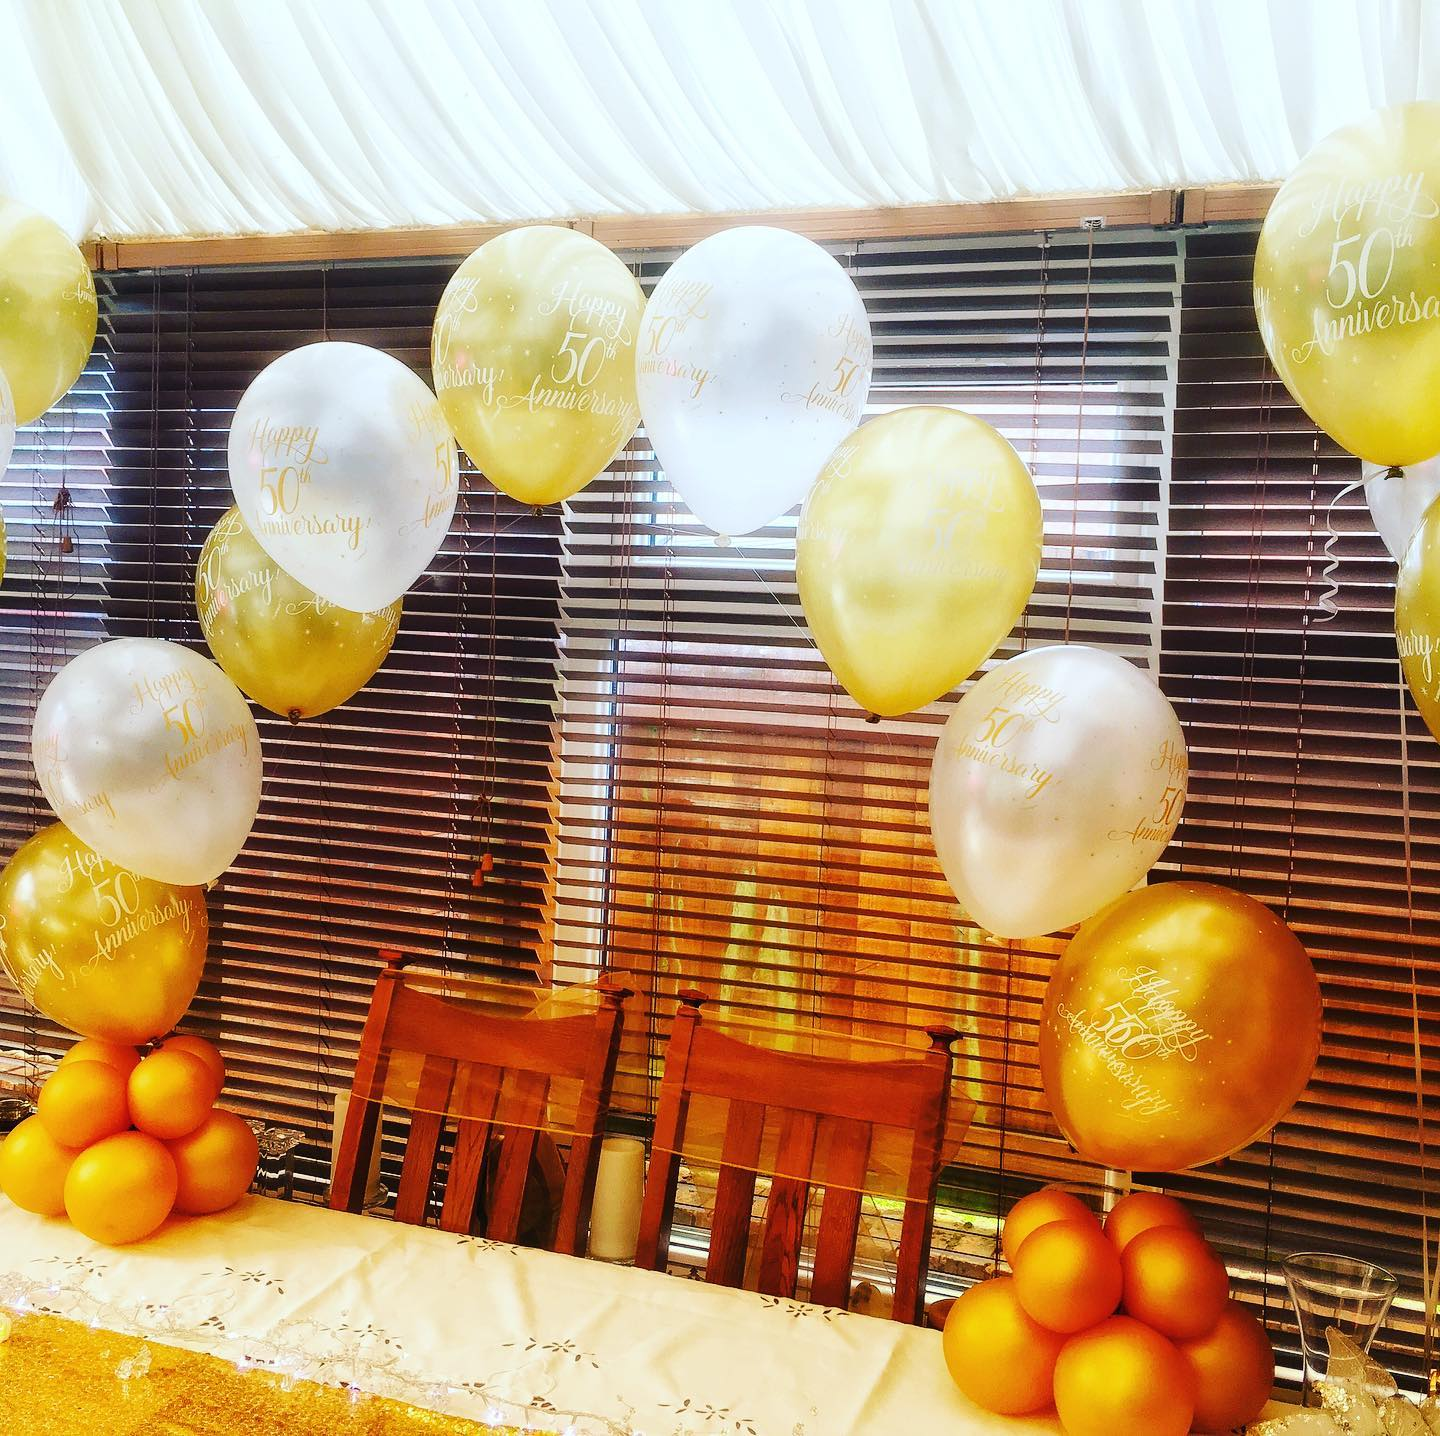 Golden Anniversary Balloon Arch